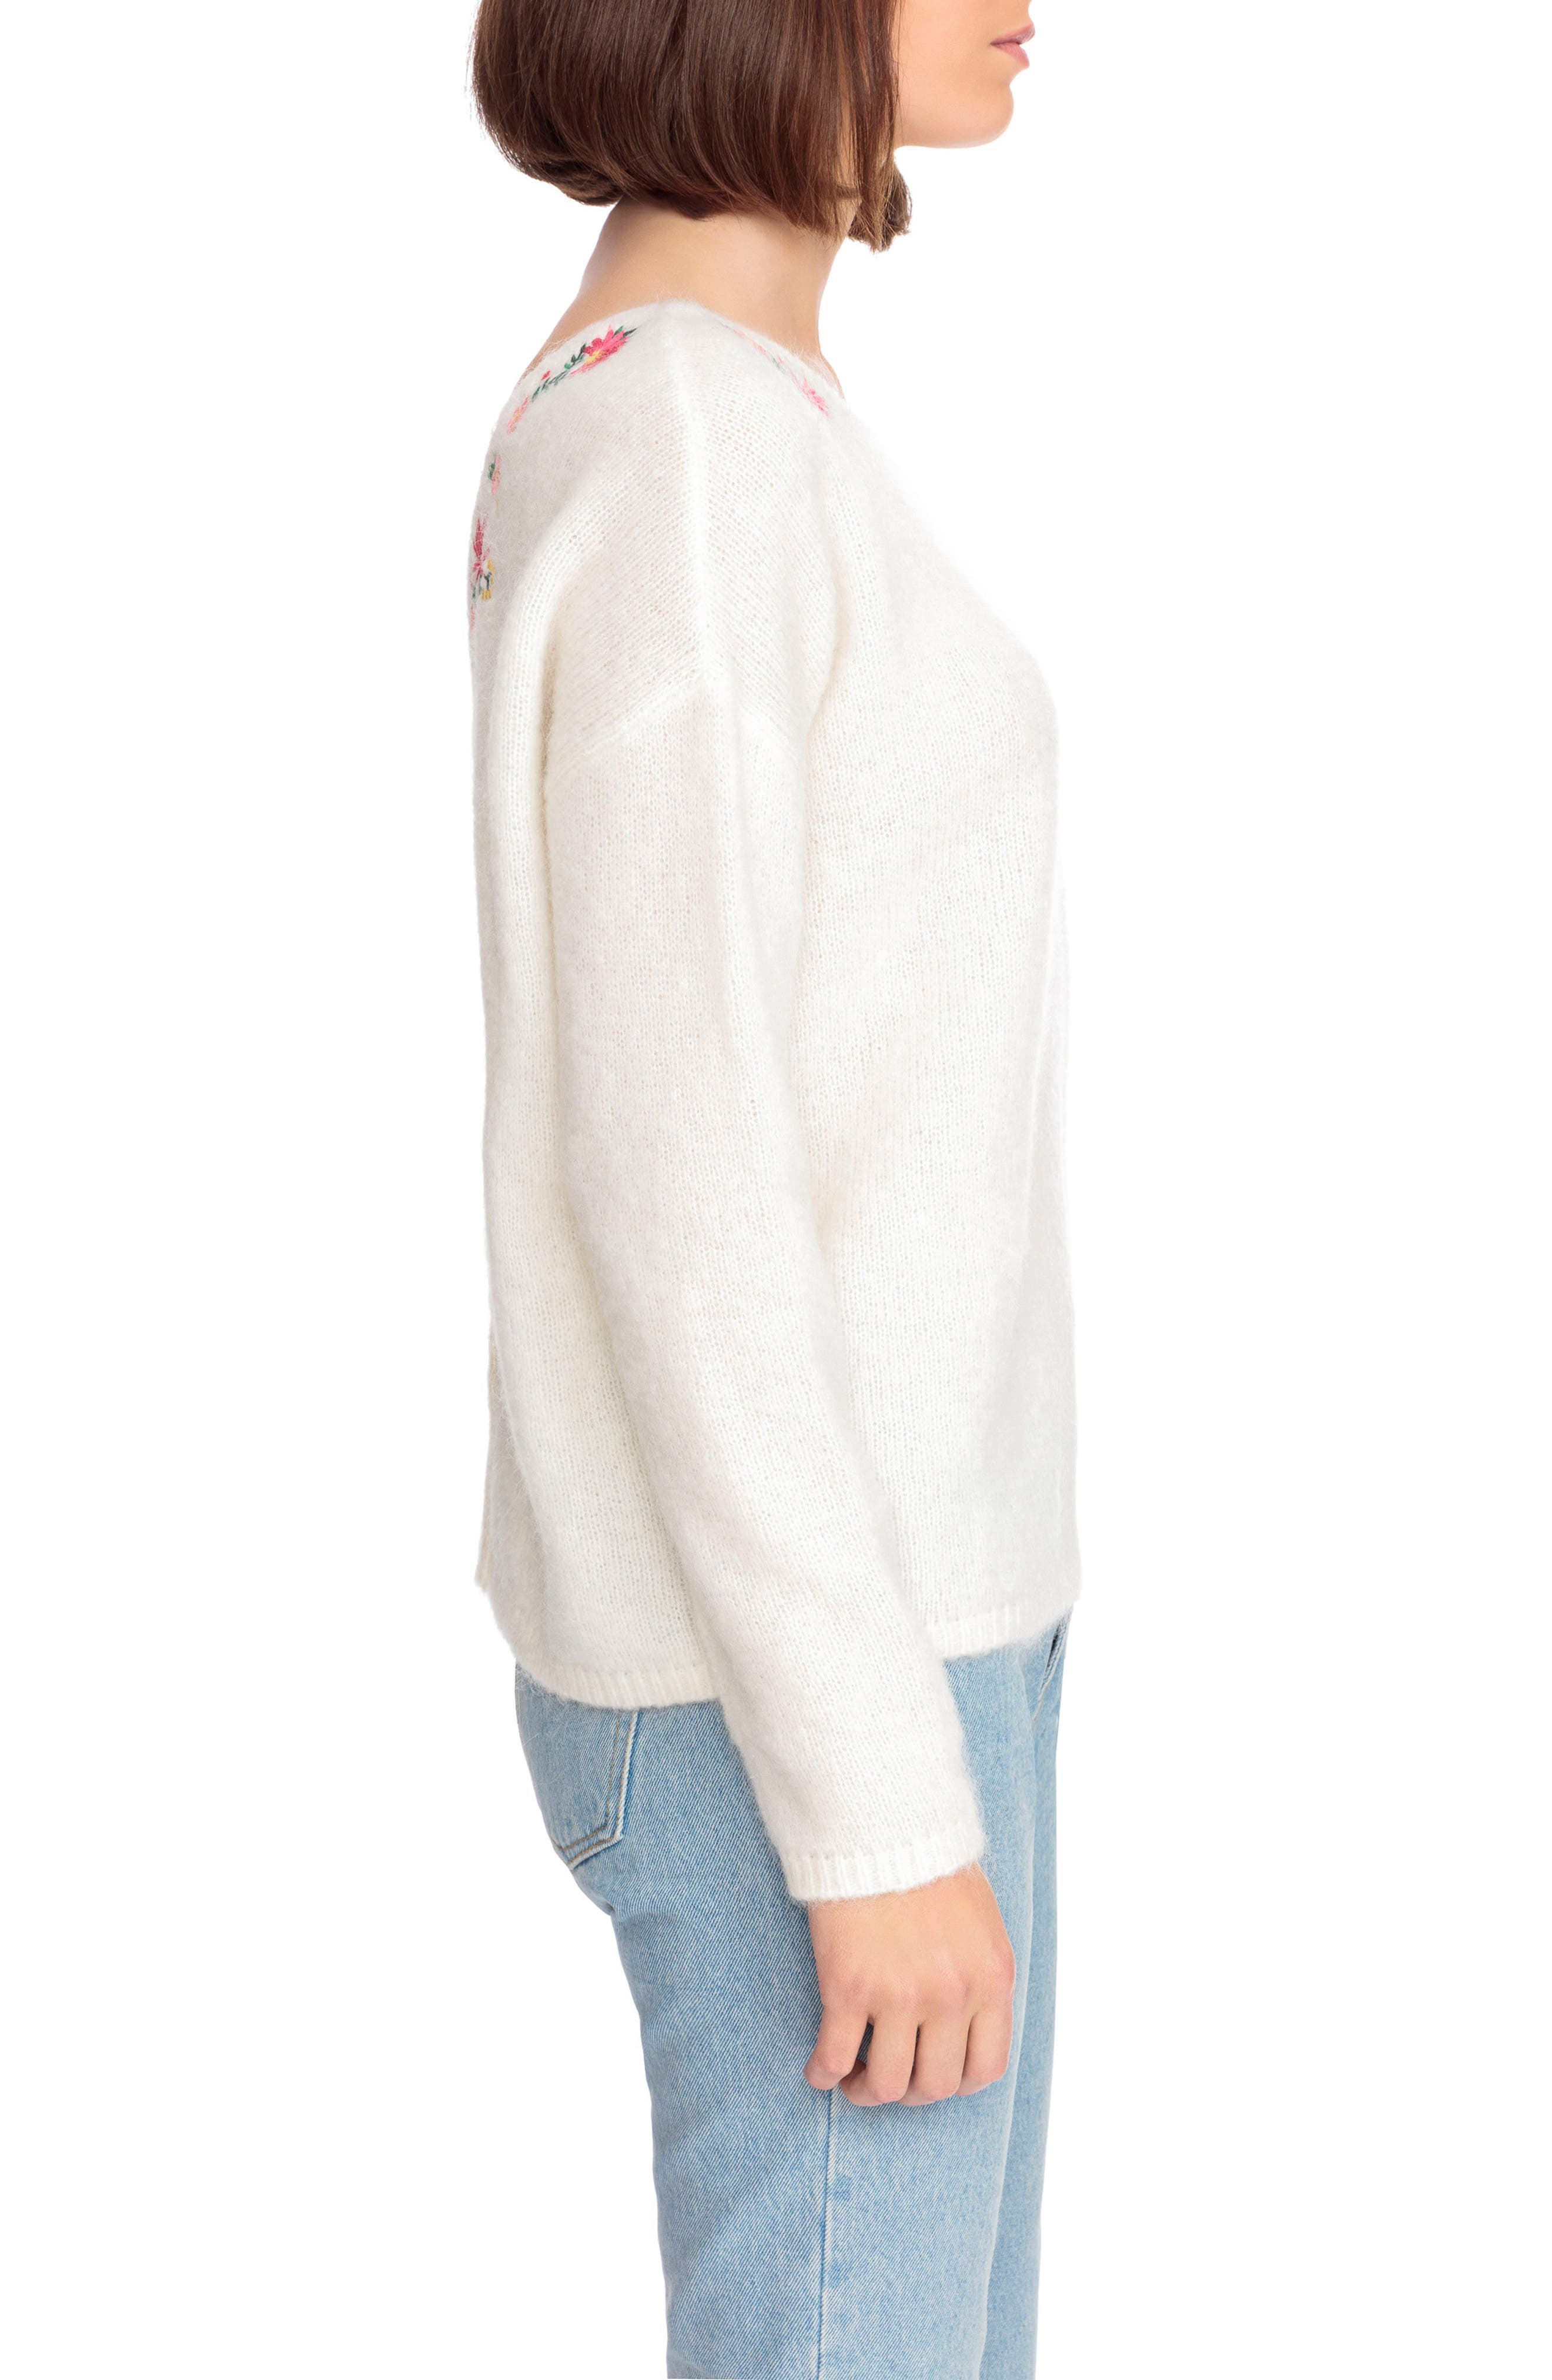 Cassiopee Embroidered Sweater,                             Alternate thumbnail 4, color,                             Off White